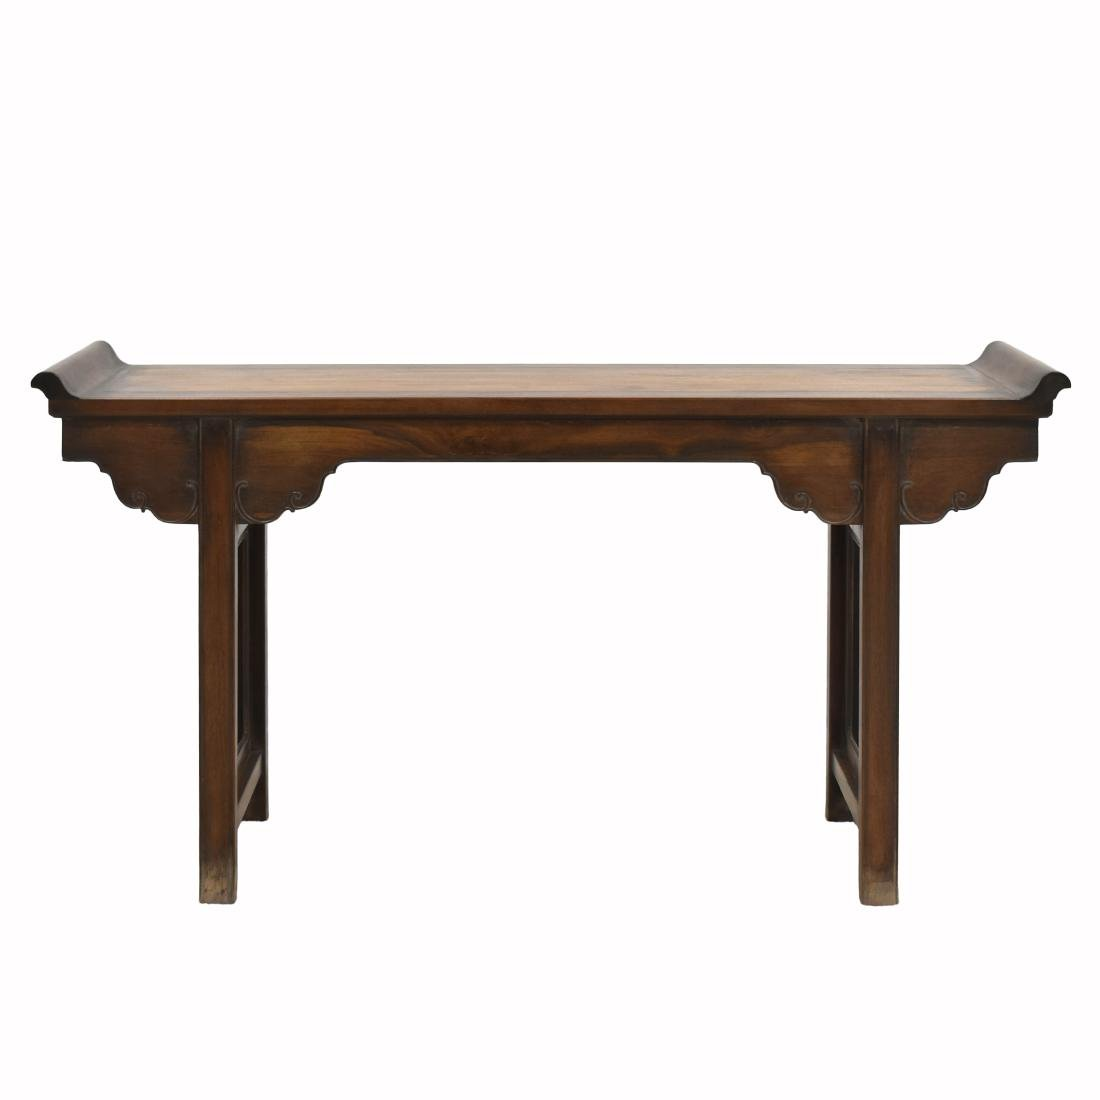 18TH C HUANGHUALI ALTAR TABLE WITH EVERTED ENDS